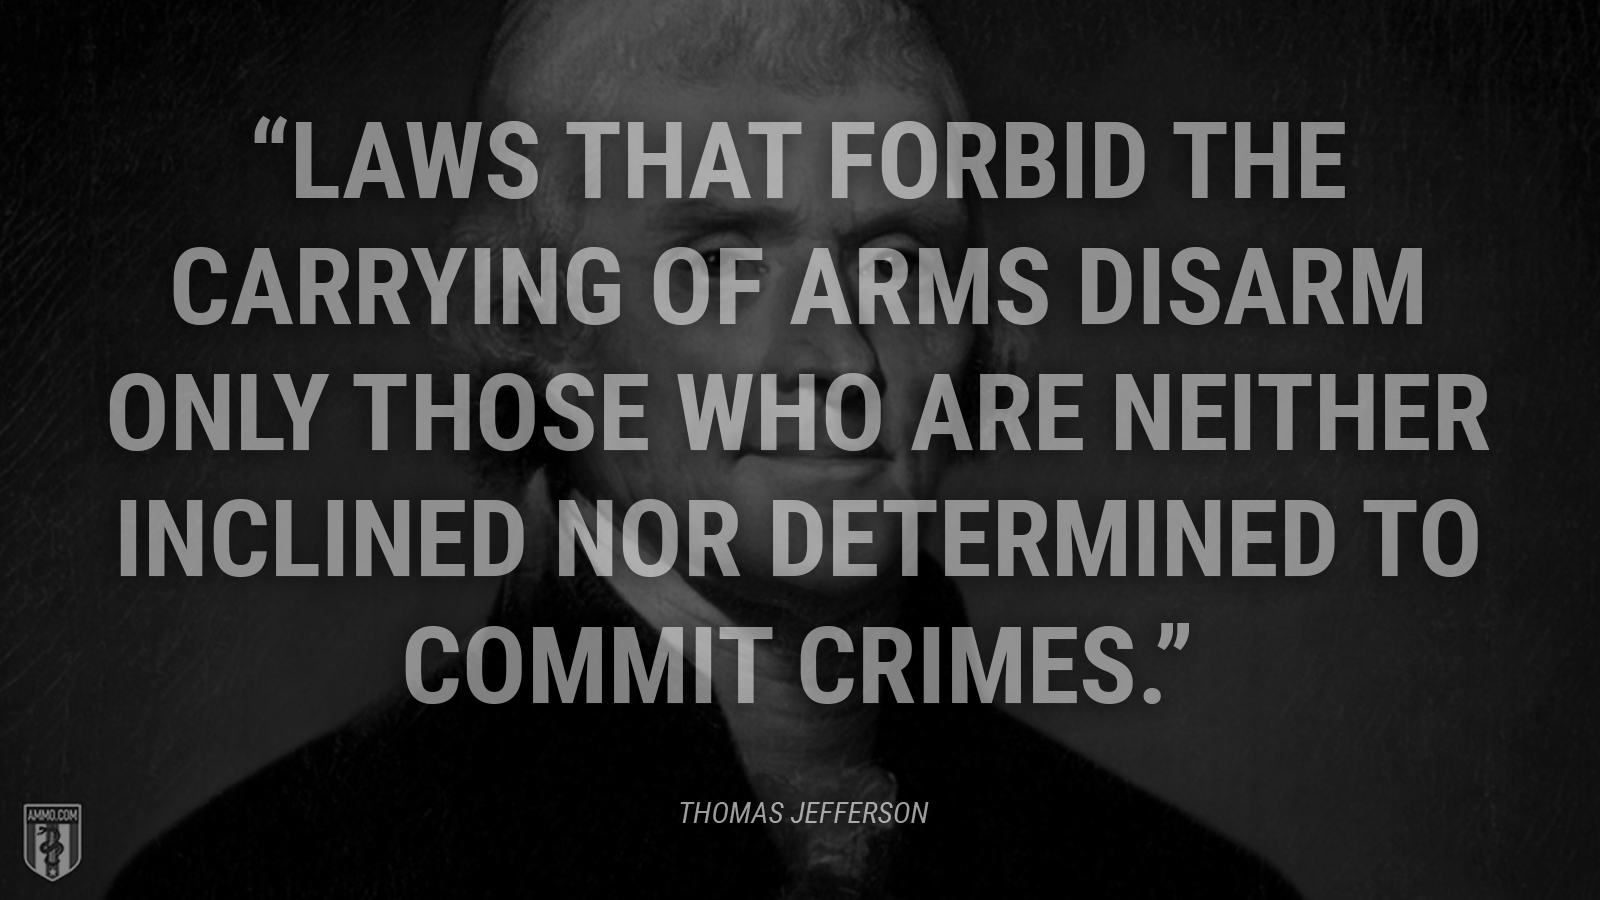 """Laws that forbid the carrying of arms disarm only those who are neither inclined nor determined to commit crimes."" - Thomas Jefferson"